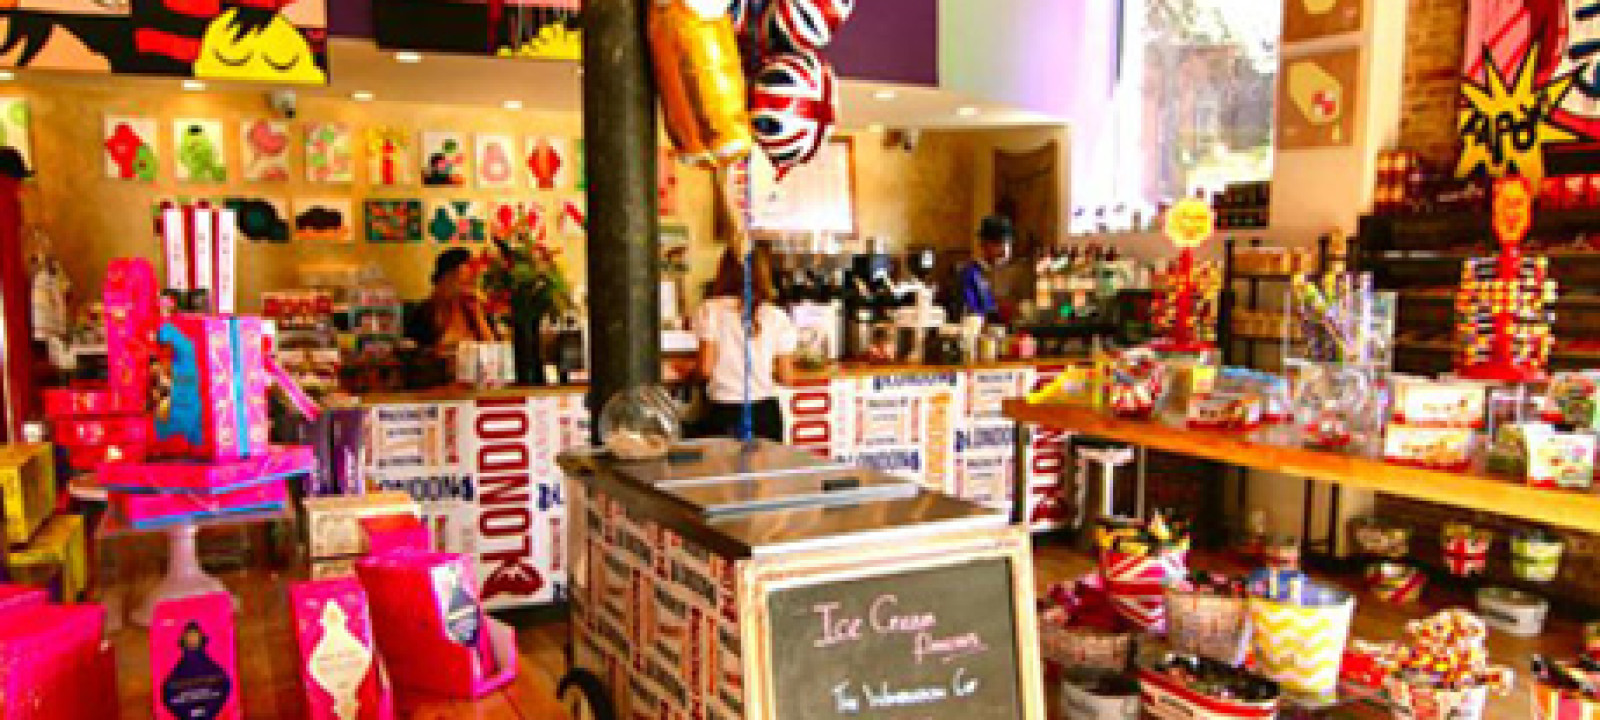 The London Candy Company